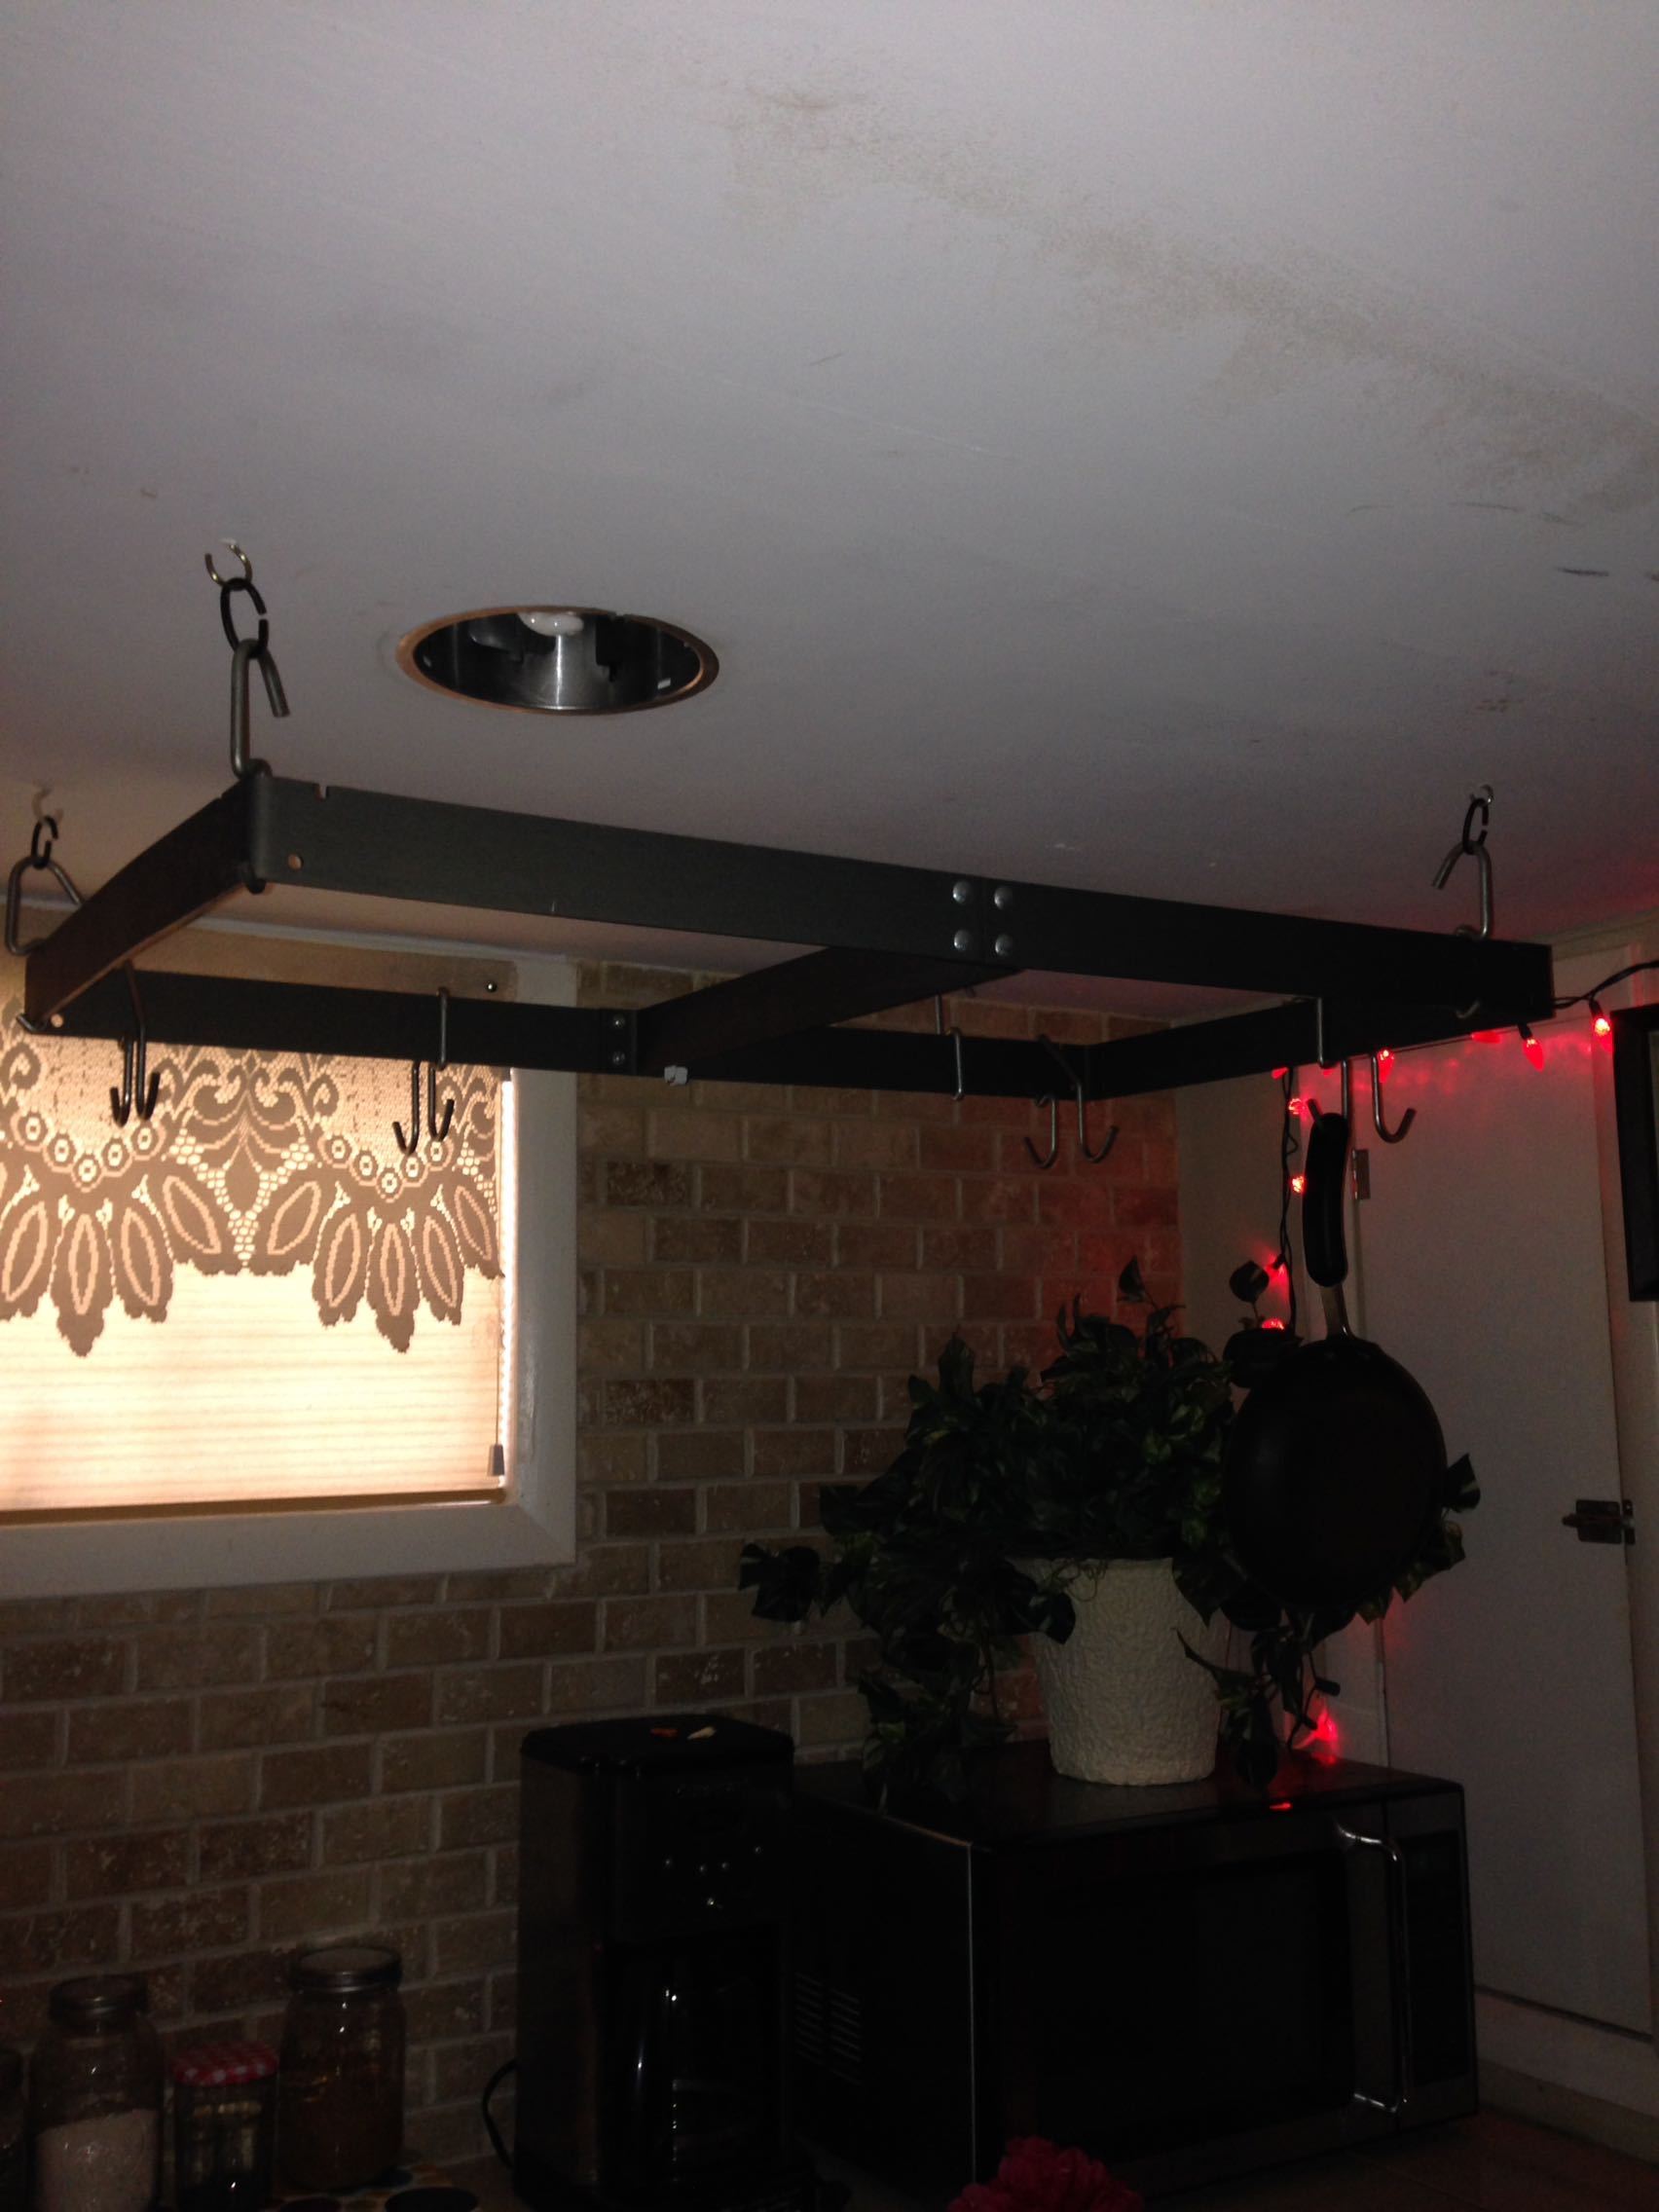 Ceiling Rack for Pots and Pans